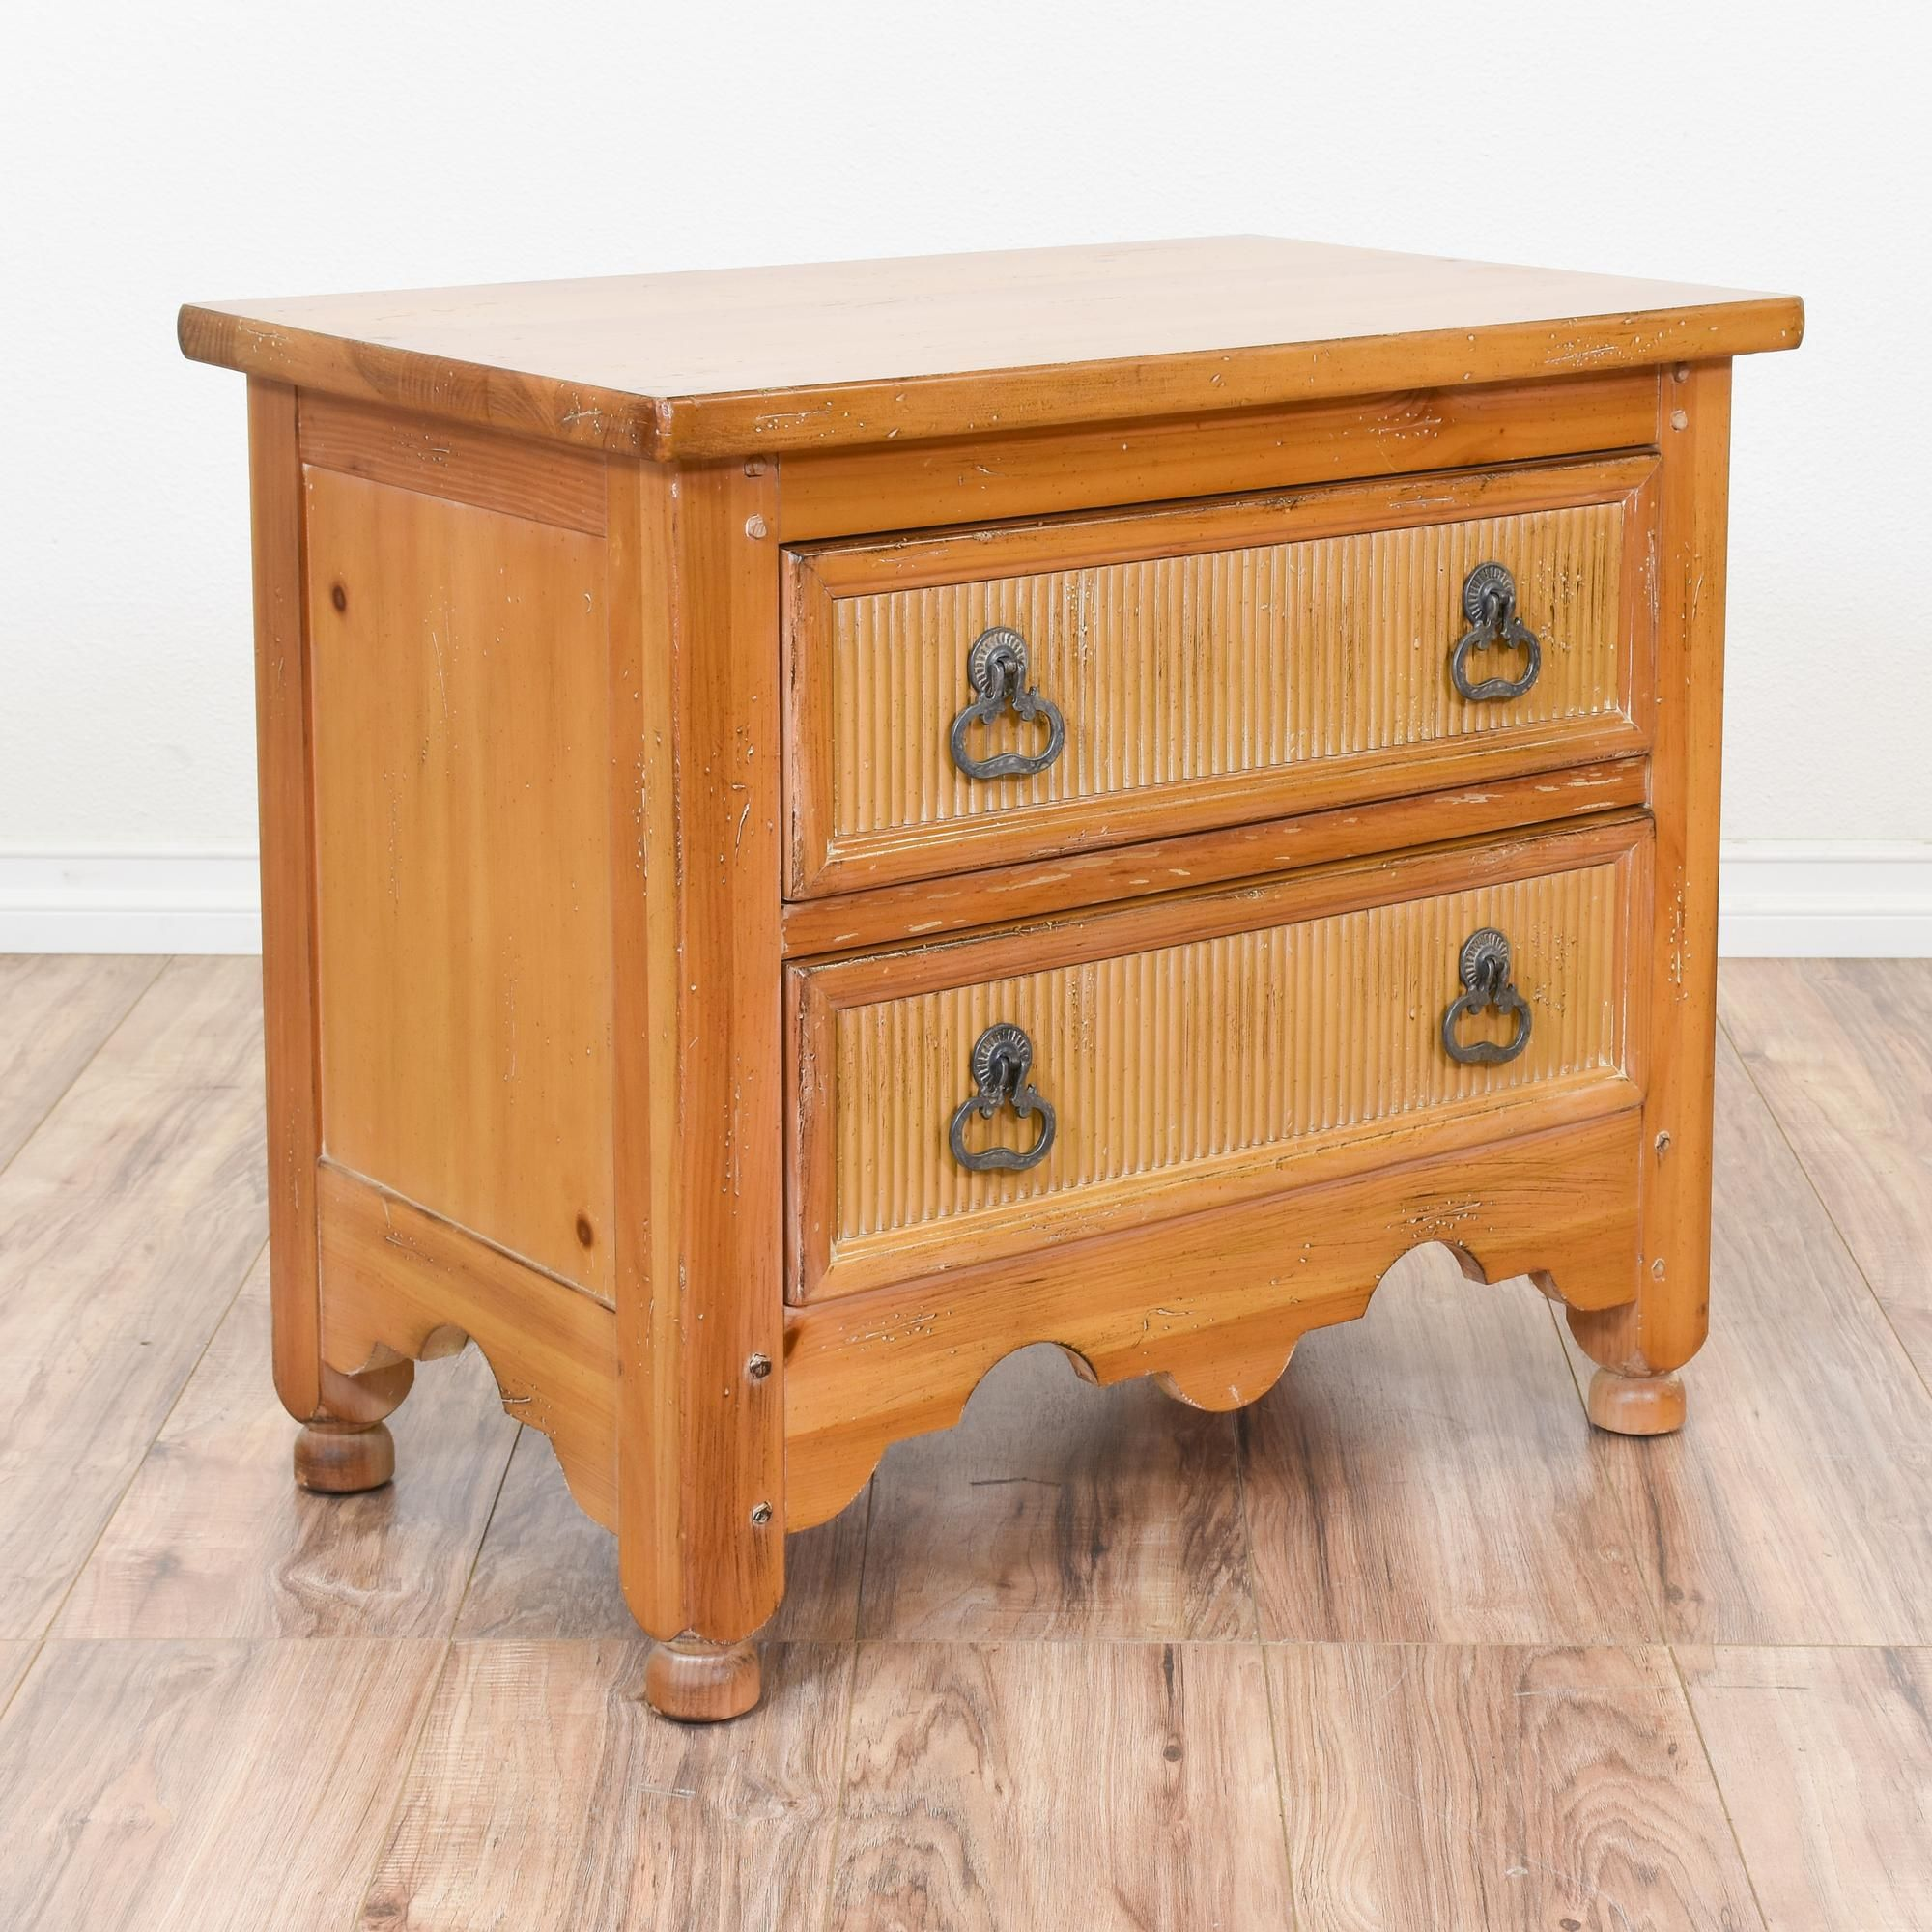 This moorish inspired nightstand is featured in a solid wood with a rustic pine finish. This end table is in great condition with 2 drawers, carved arch details and ridge panels. Unique bed side table with tons of storage! #mediterranean #dressers #nightstand #sandiegovintage #vintagefurniture